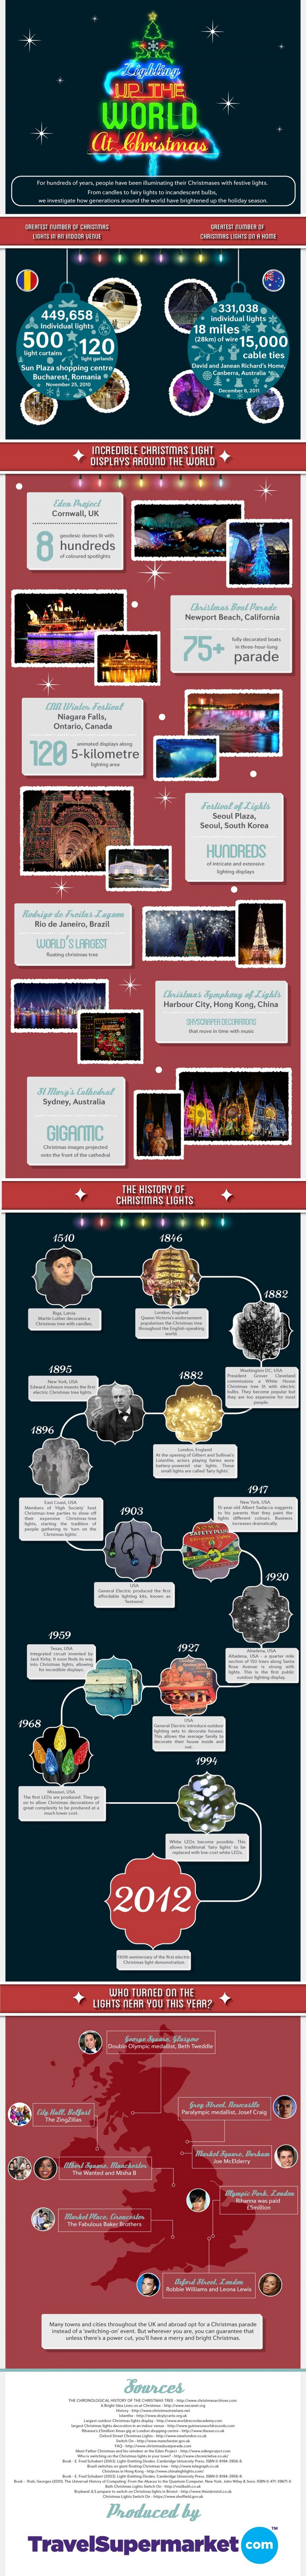 Lighting up the world at Christmas Infographic